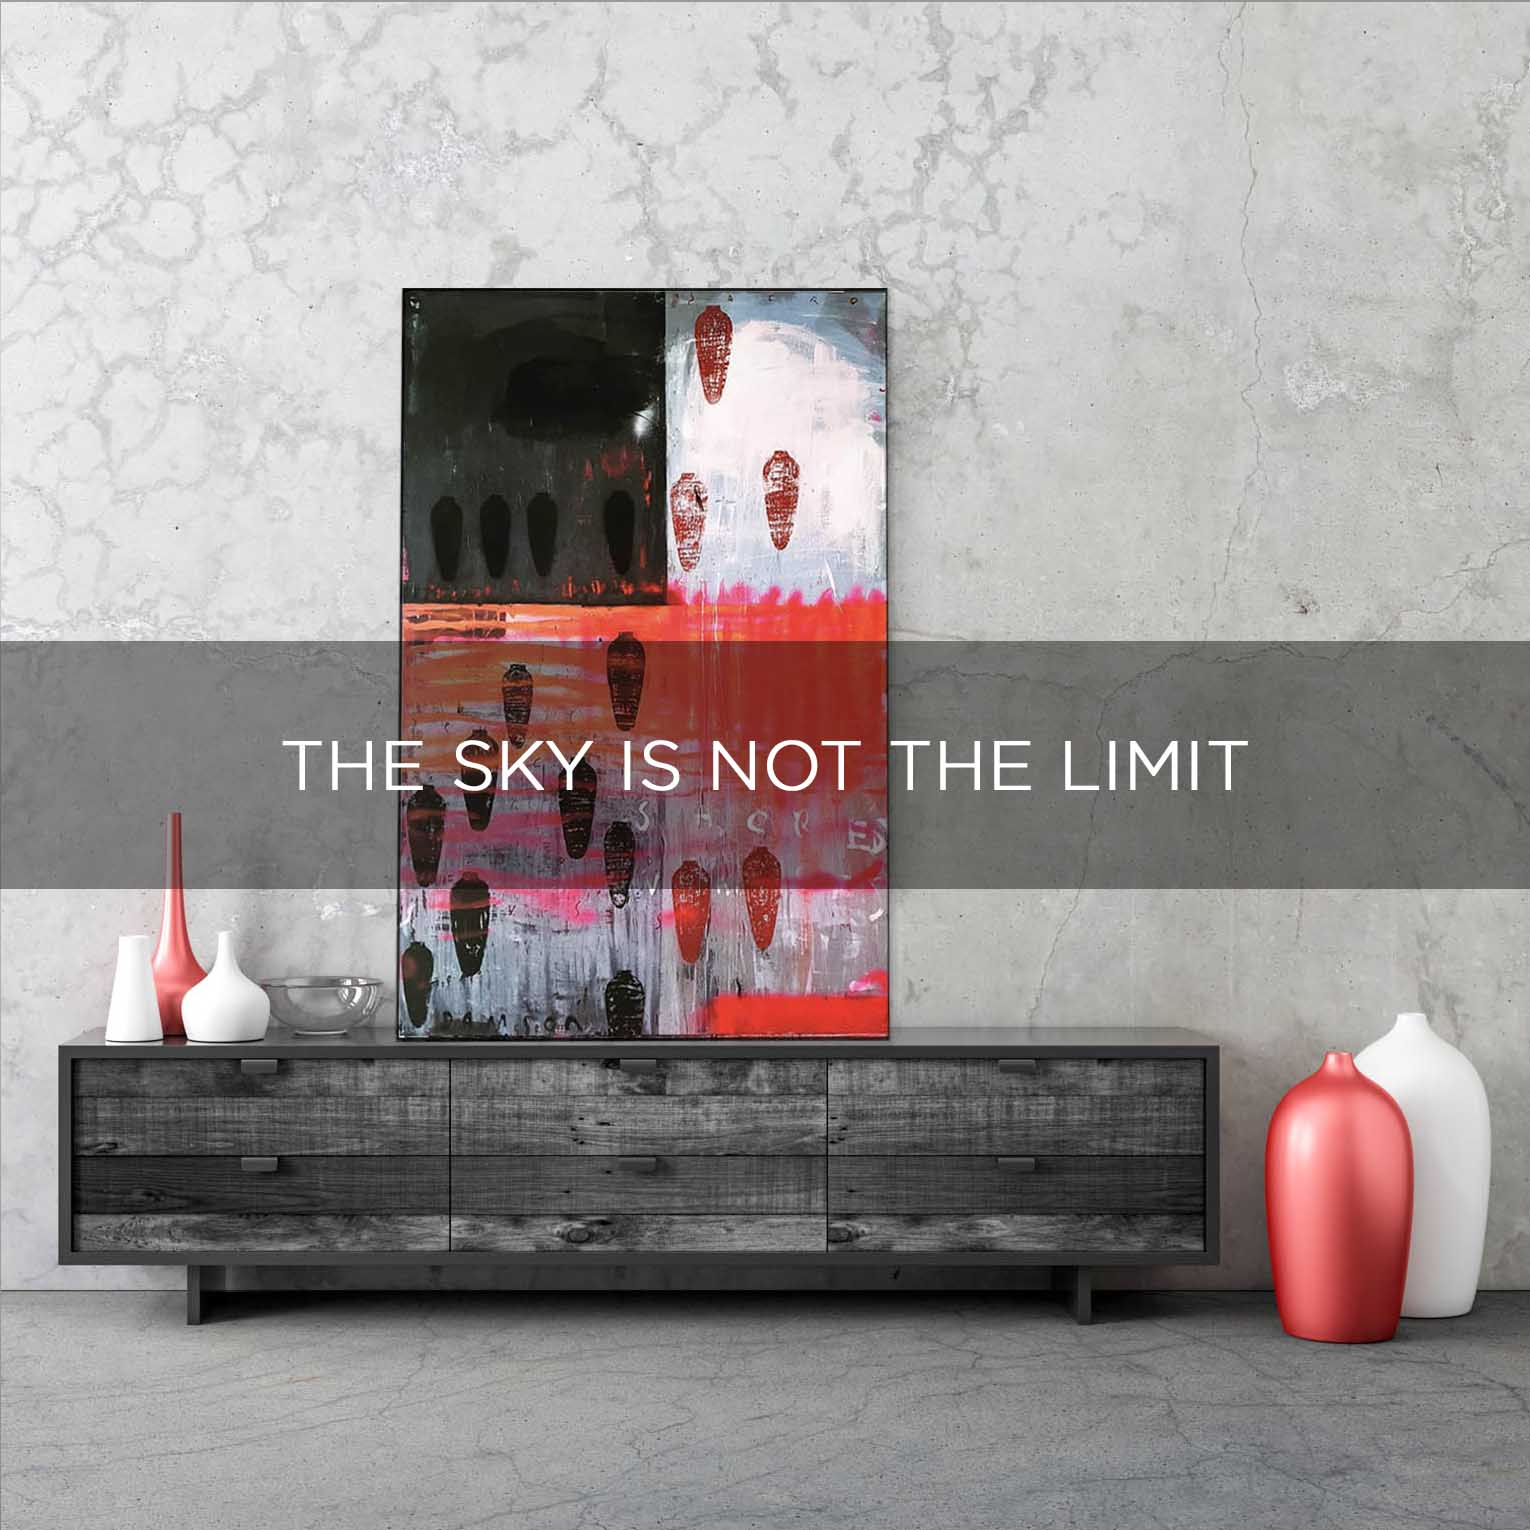 THE SKY IS NOT THE LIMIT - QBX DESIGN